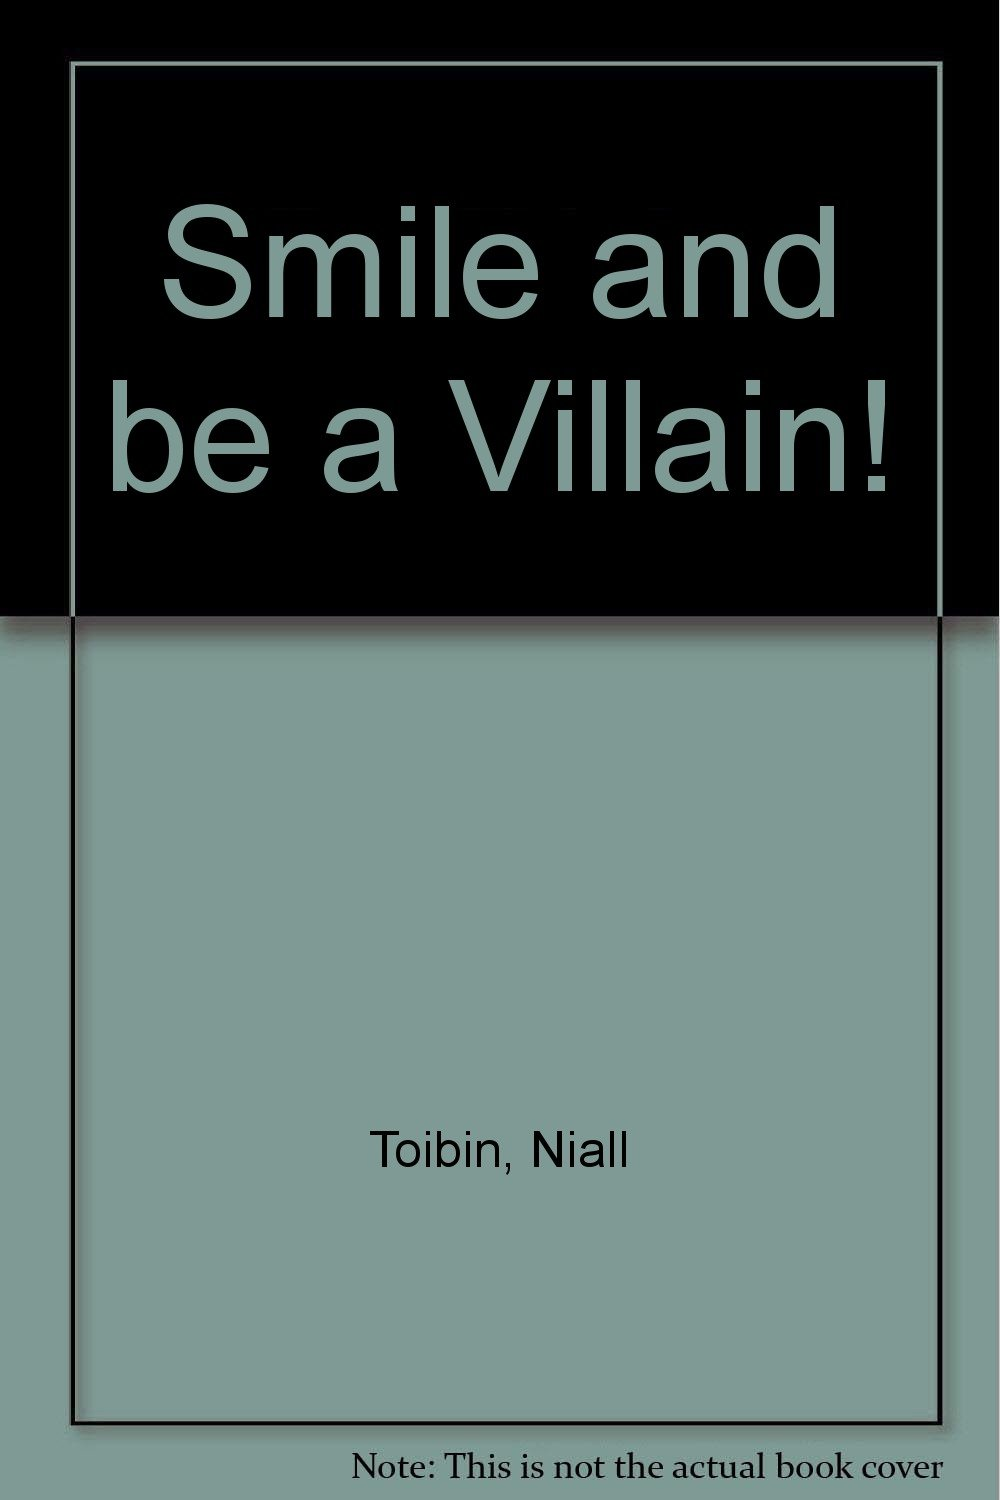 smile-and-be-a-villain